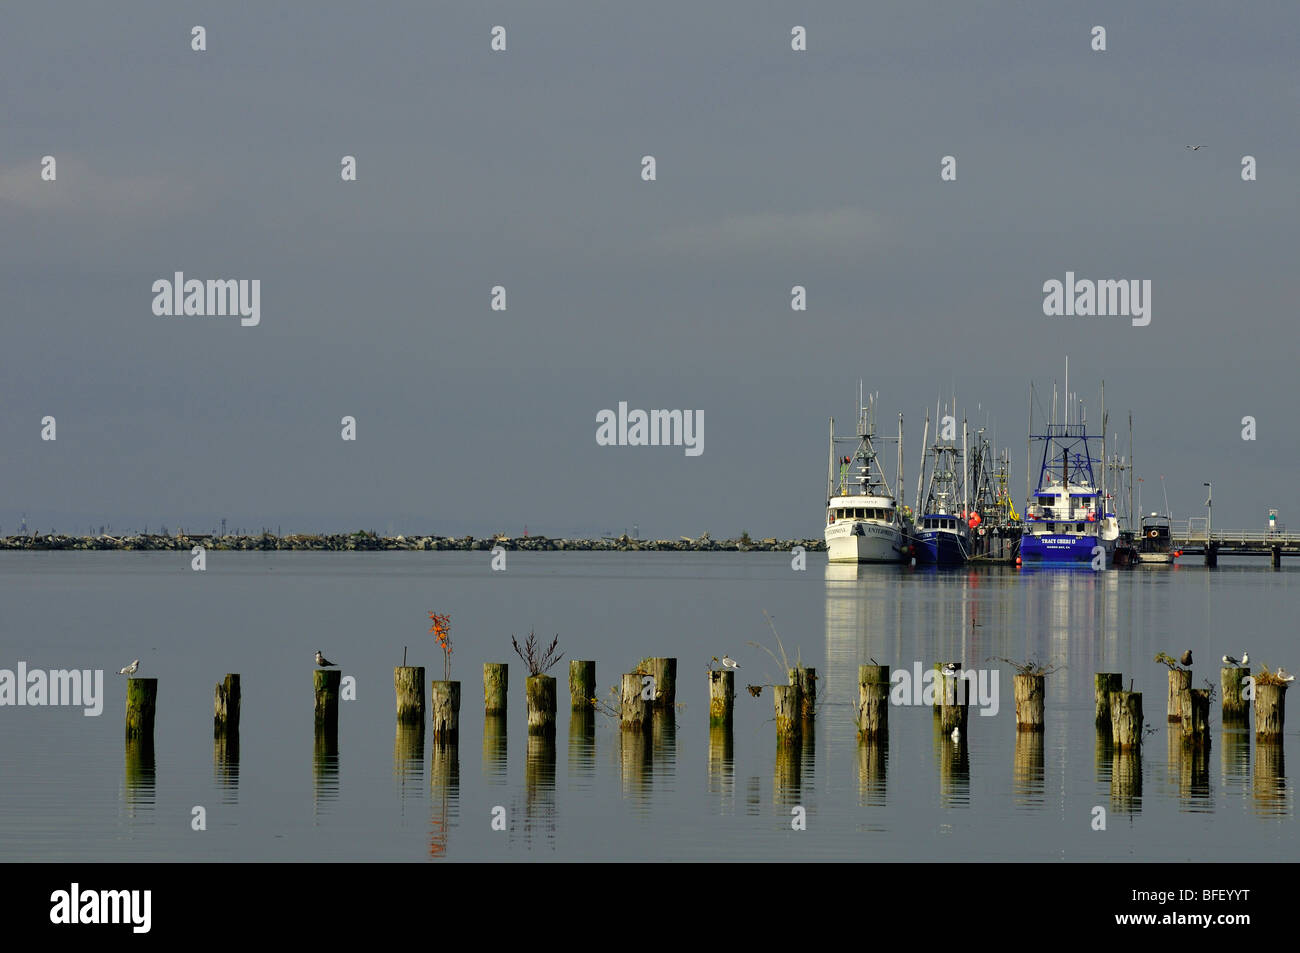 Three fishing vessels moored at Steveston,BC. Cut off wood pylons in foreground with sea gulls on them. - Stock Image